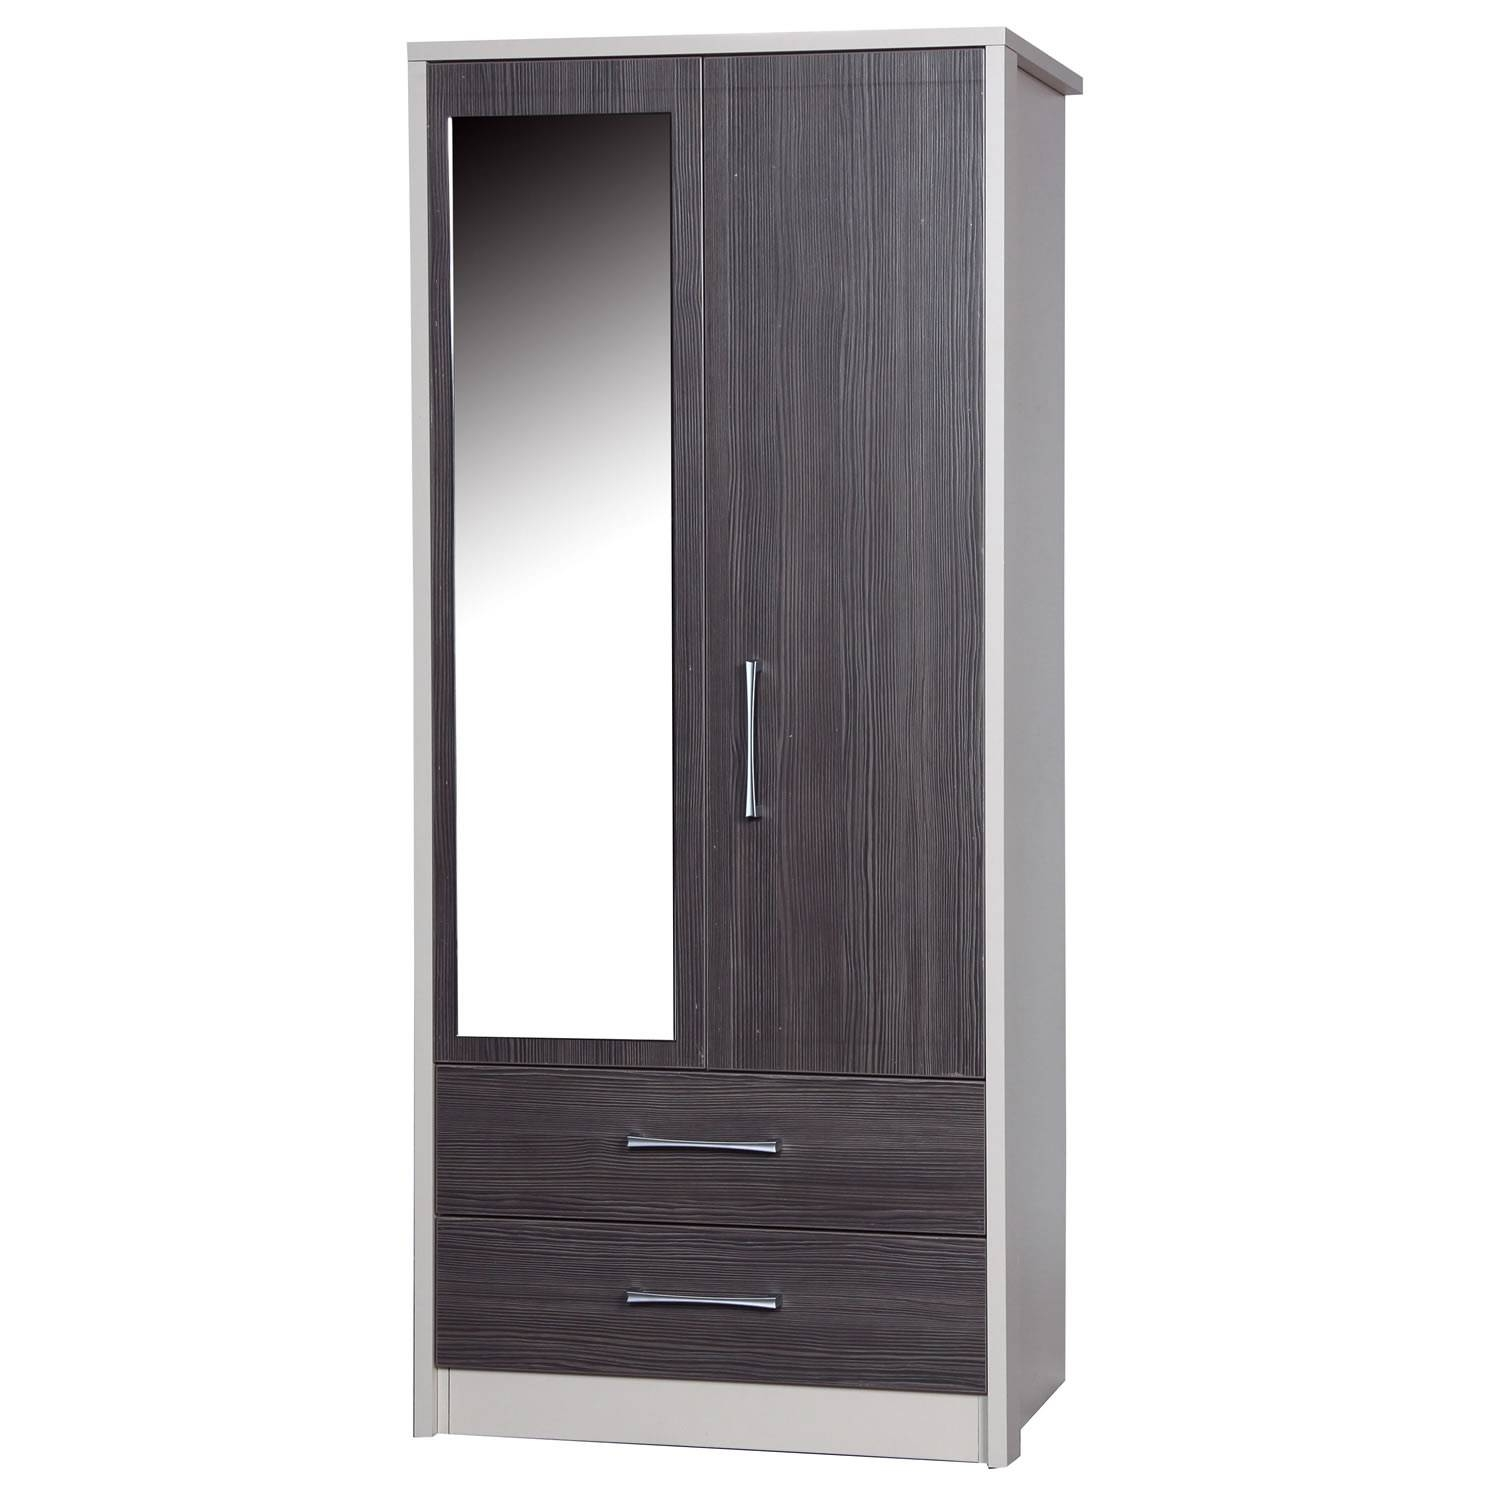 Avola Grey 2 Door 2 Drawer Combi Wardrobe With Mirror – Next Day for Wardrobes With Mirror And Drawers (Image 1 of 15)